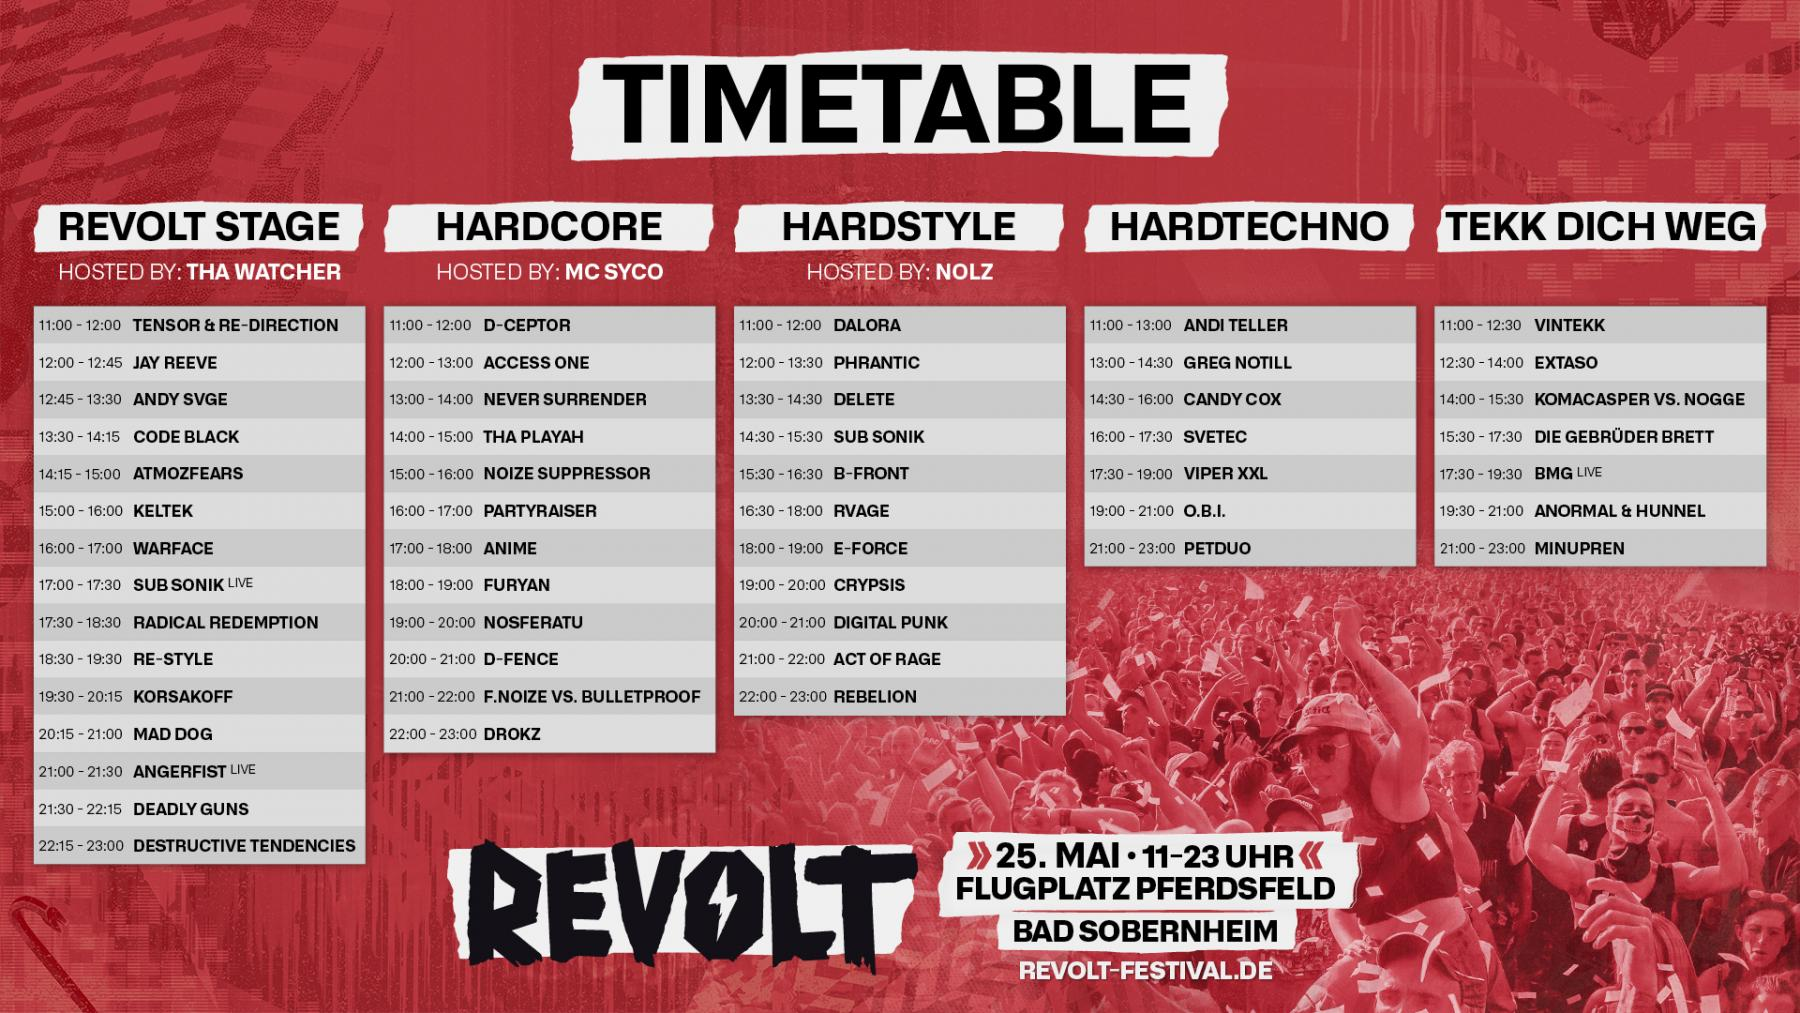 Check out the OFFICIAL TIMETABLE!